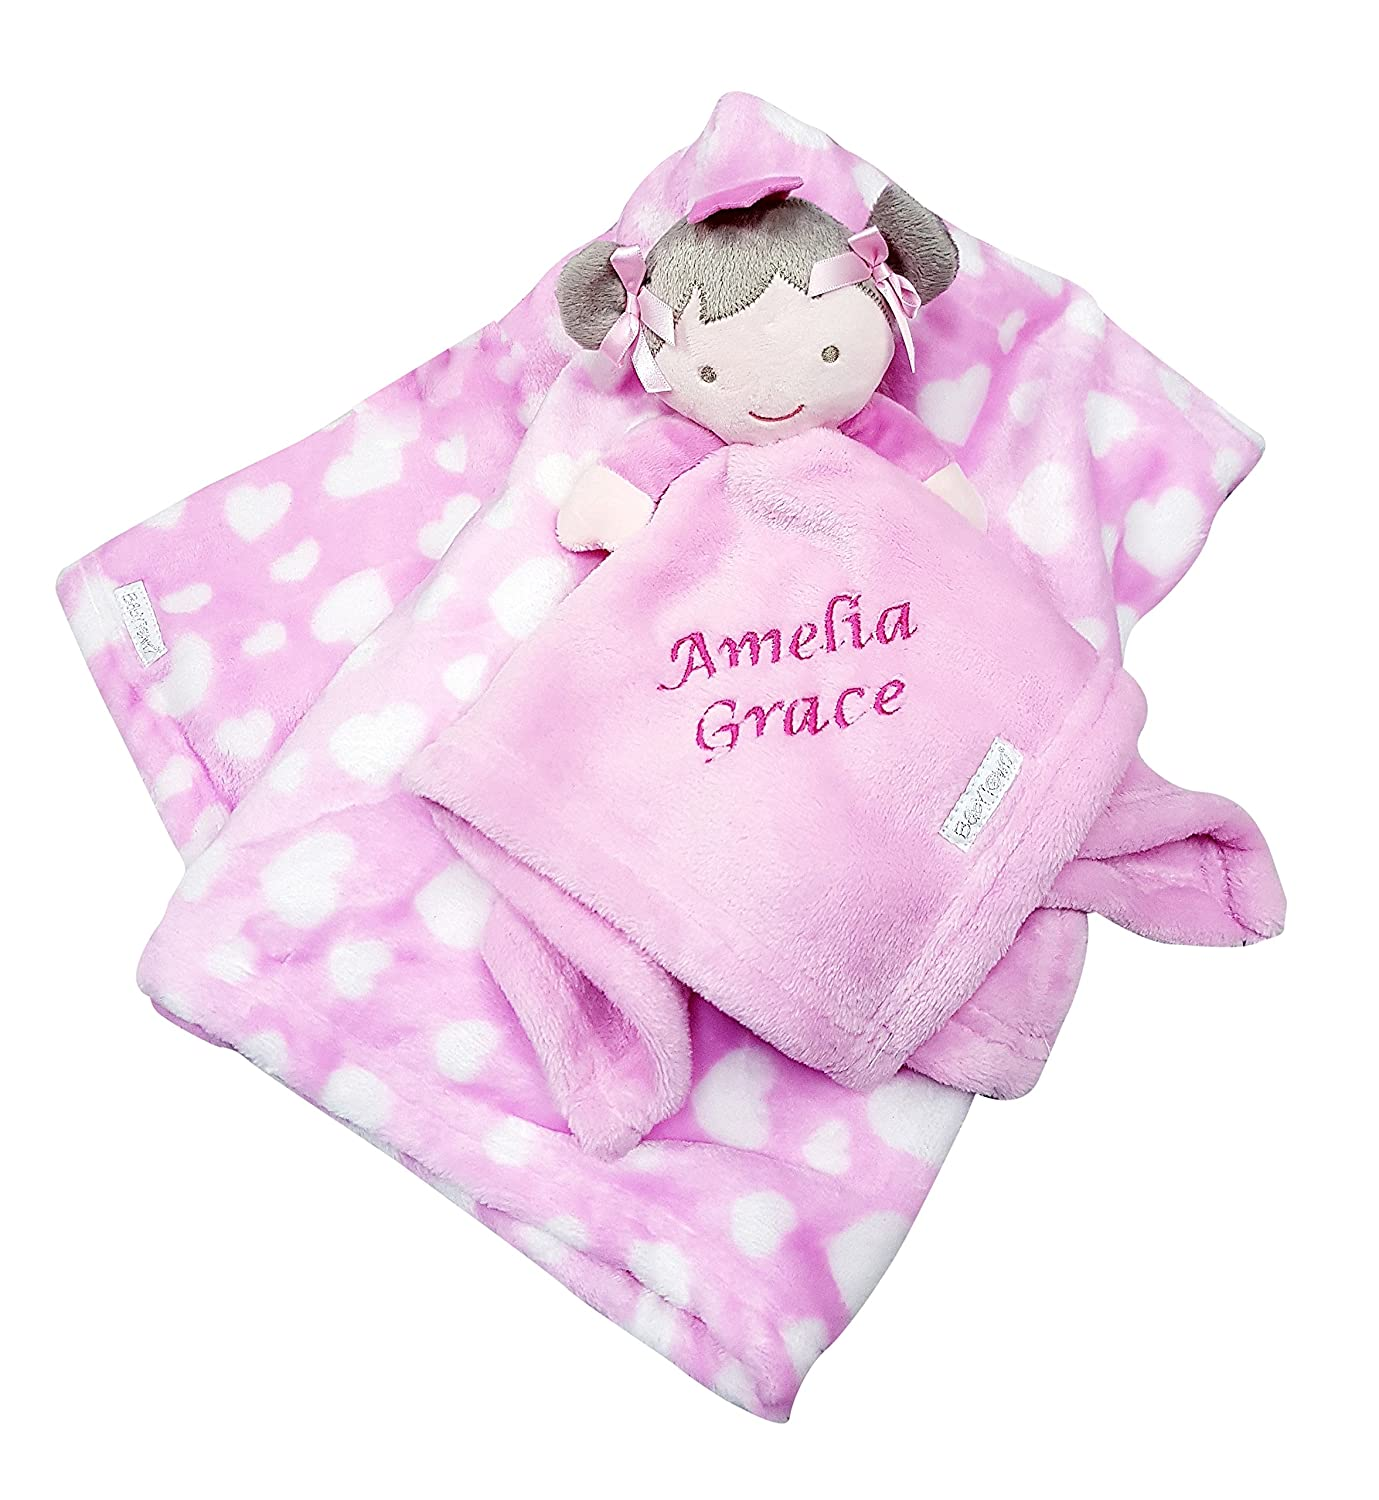 Personalised Embroidered Baby Comforter Pink Dolly + Blanket Gift Set Baby Girl Hoolaroo fdfre3443